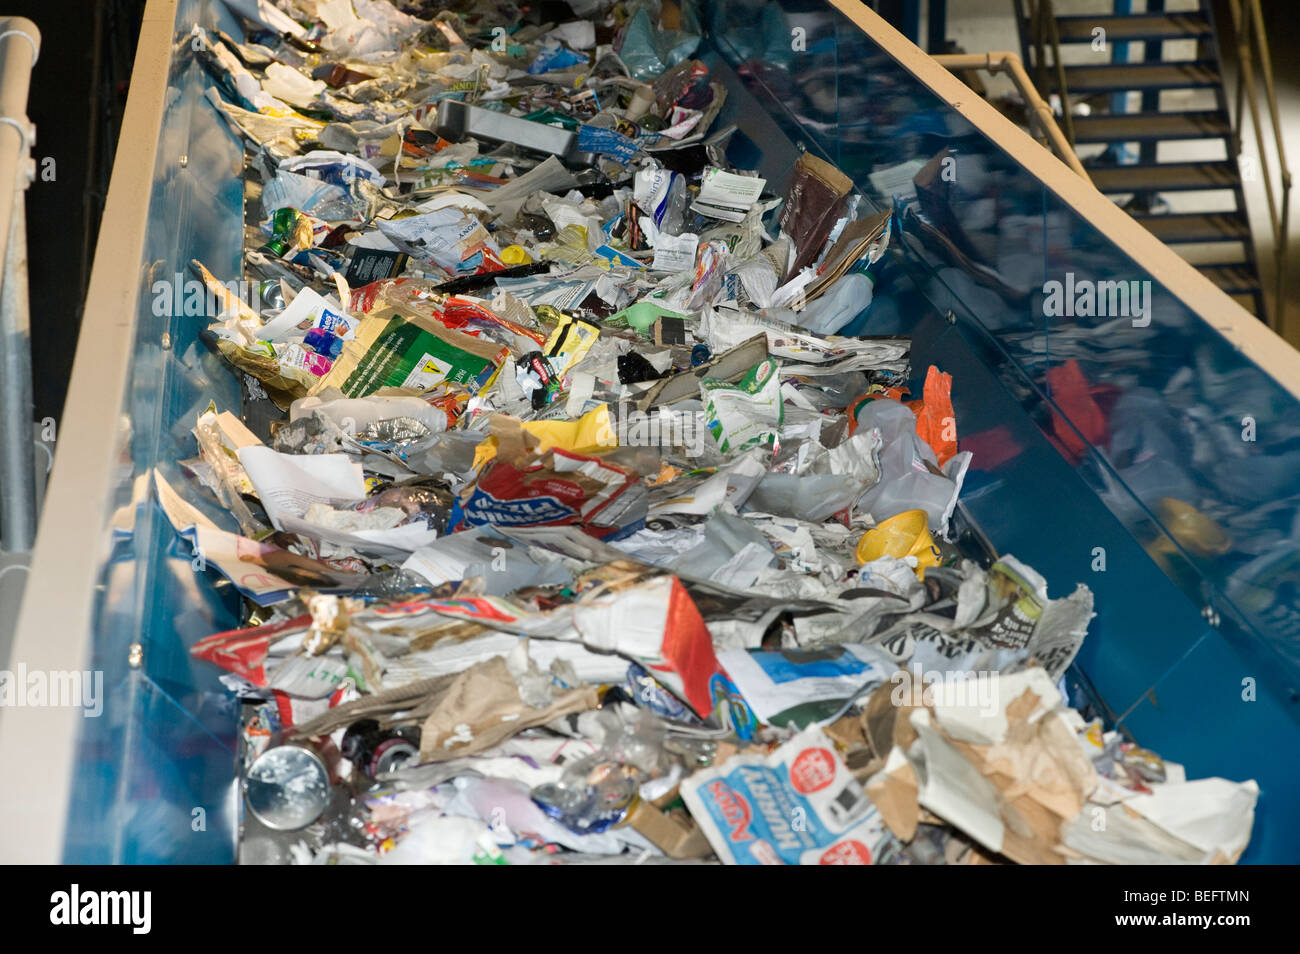 Rubbish on a conveyor belt for sorting at a recycling plant in the UK. - Stock Image